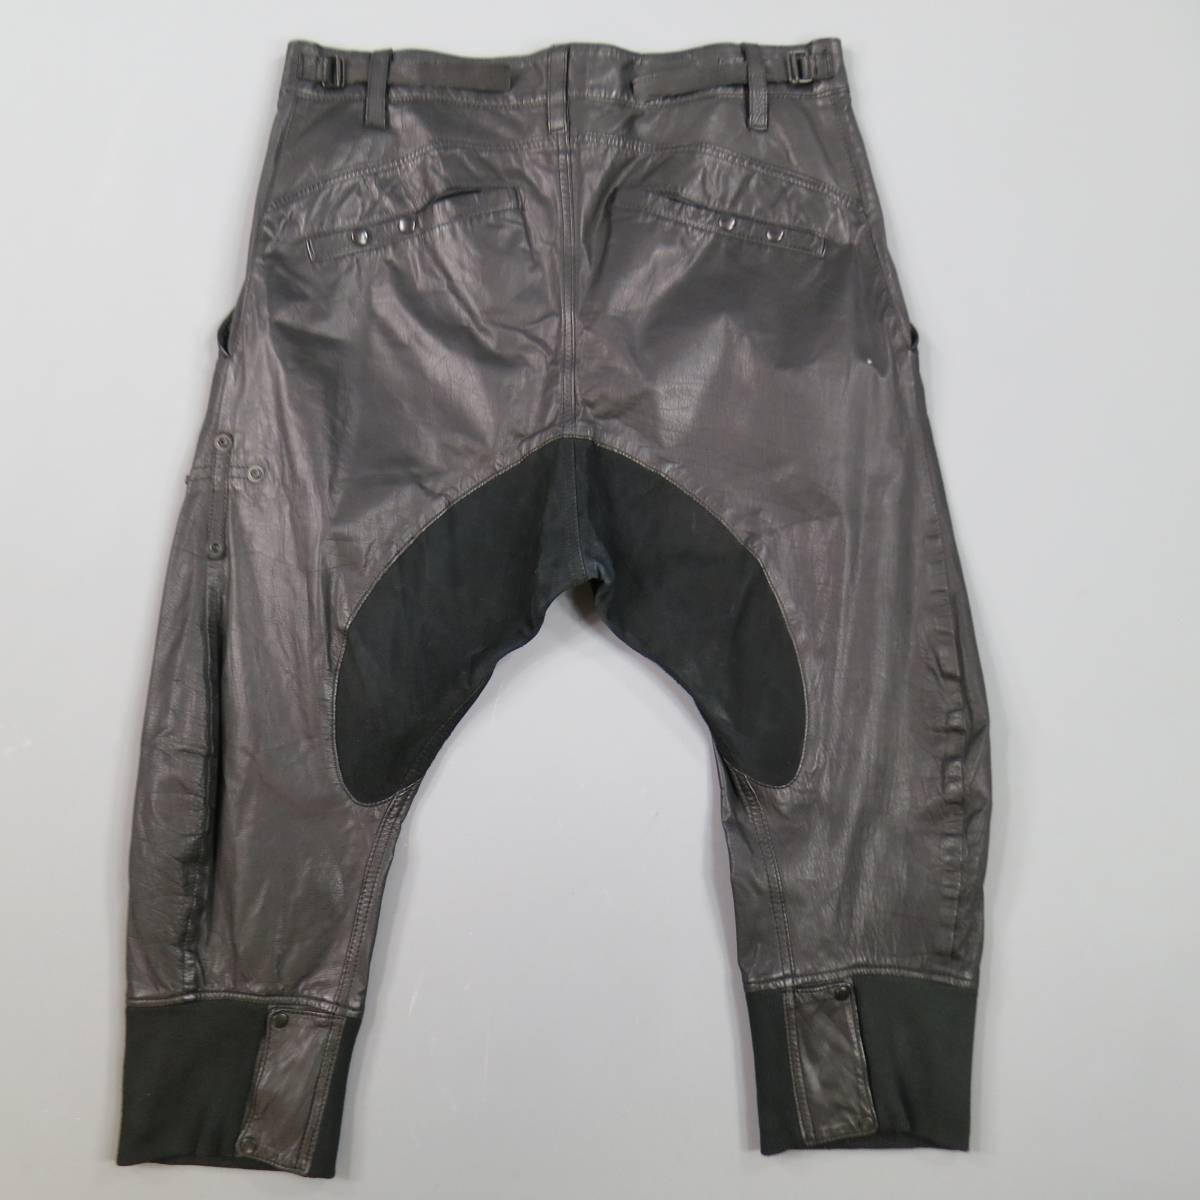 L G B Size 33 Men S Black Leather Cropped Drop Crotch